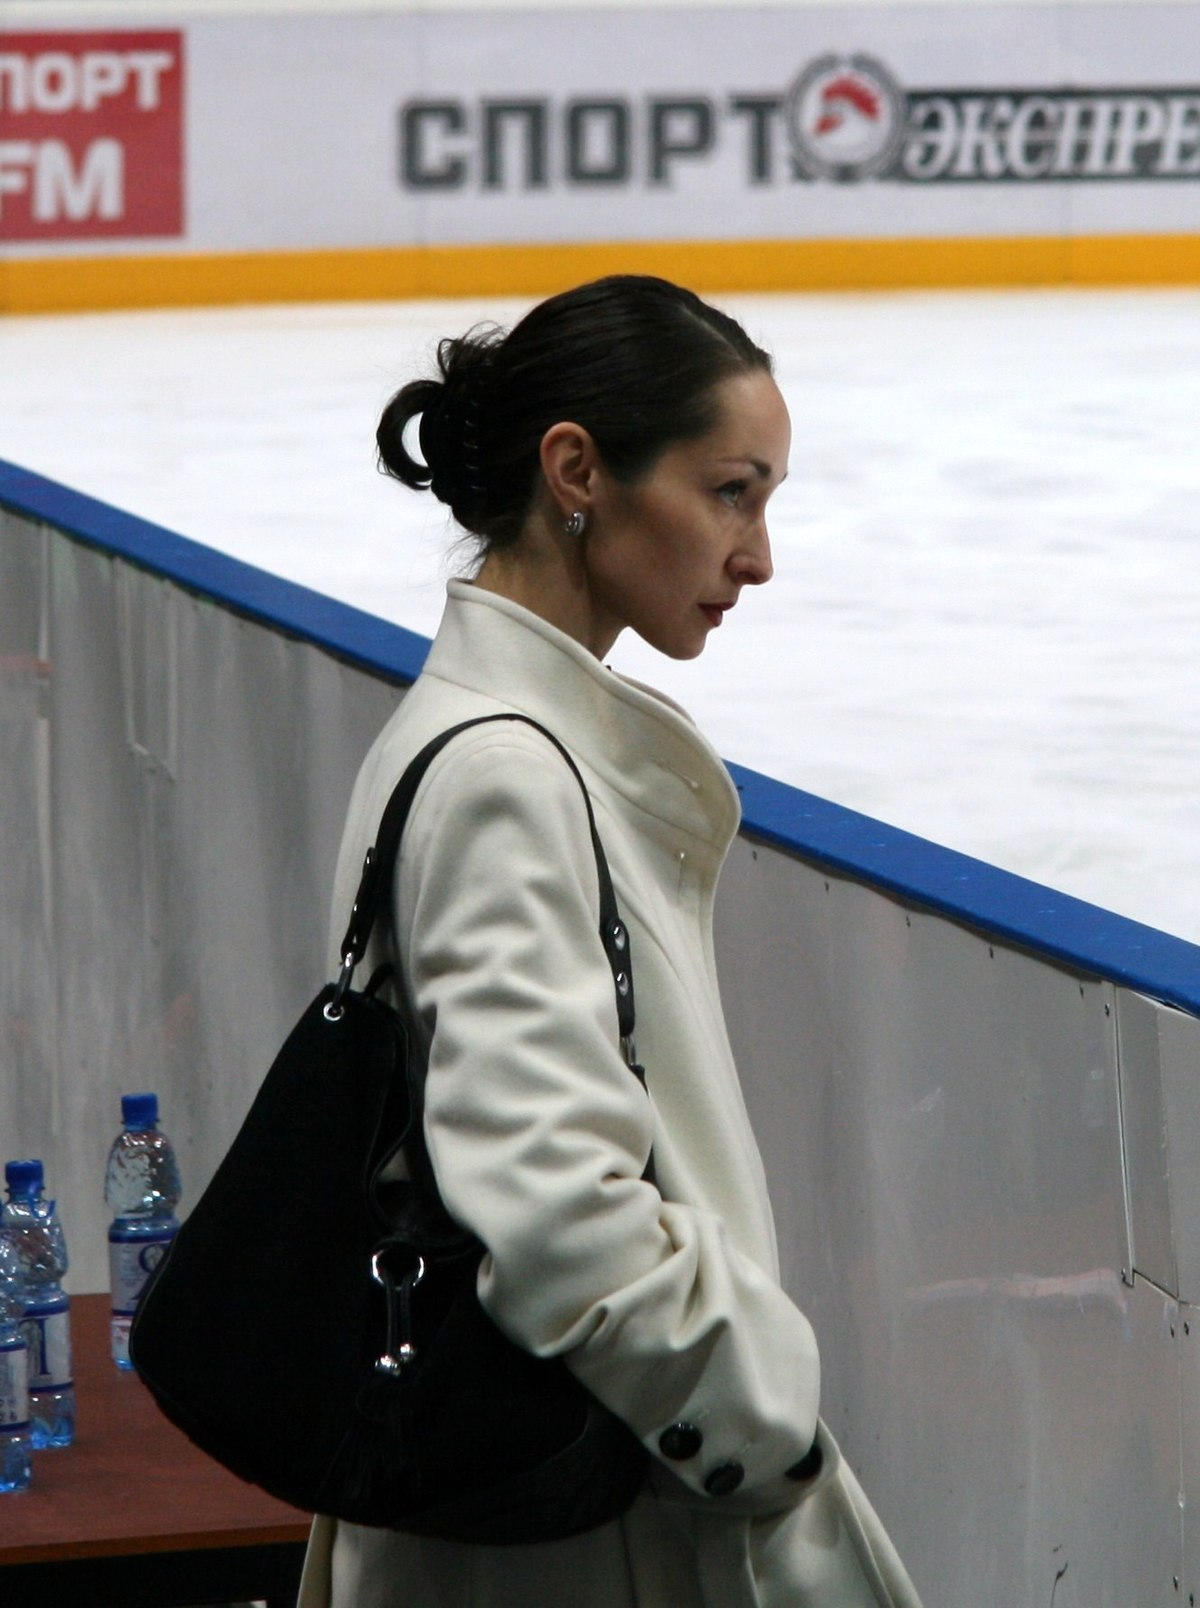 Figure skater Angelica Krylova: biography, photos and achievements 33